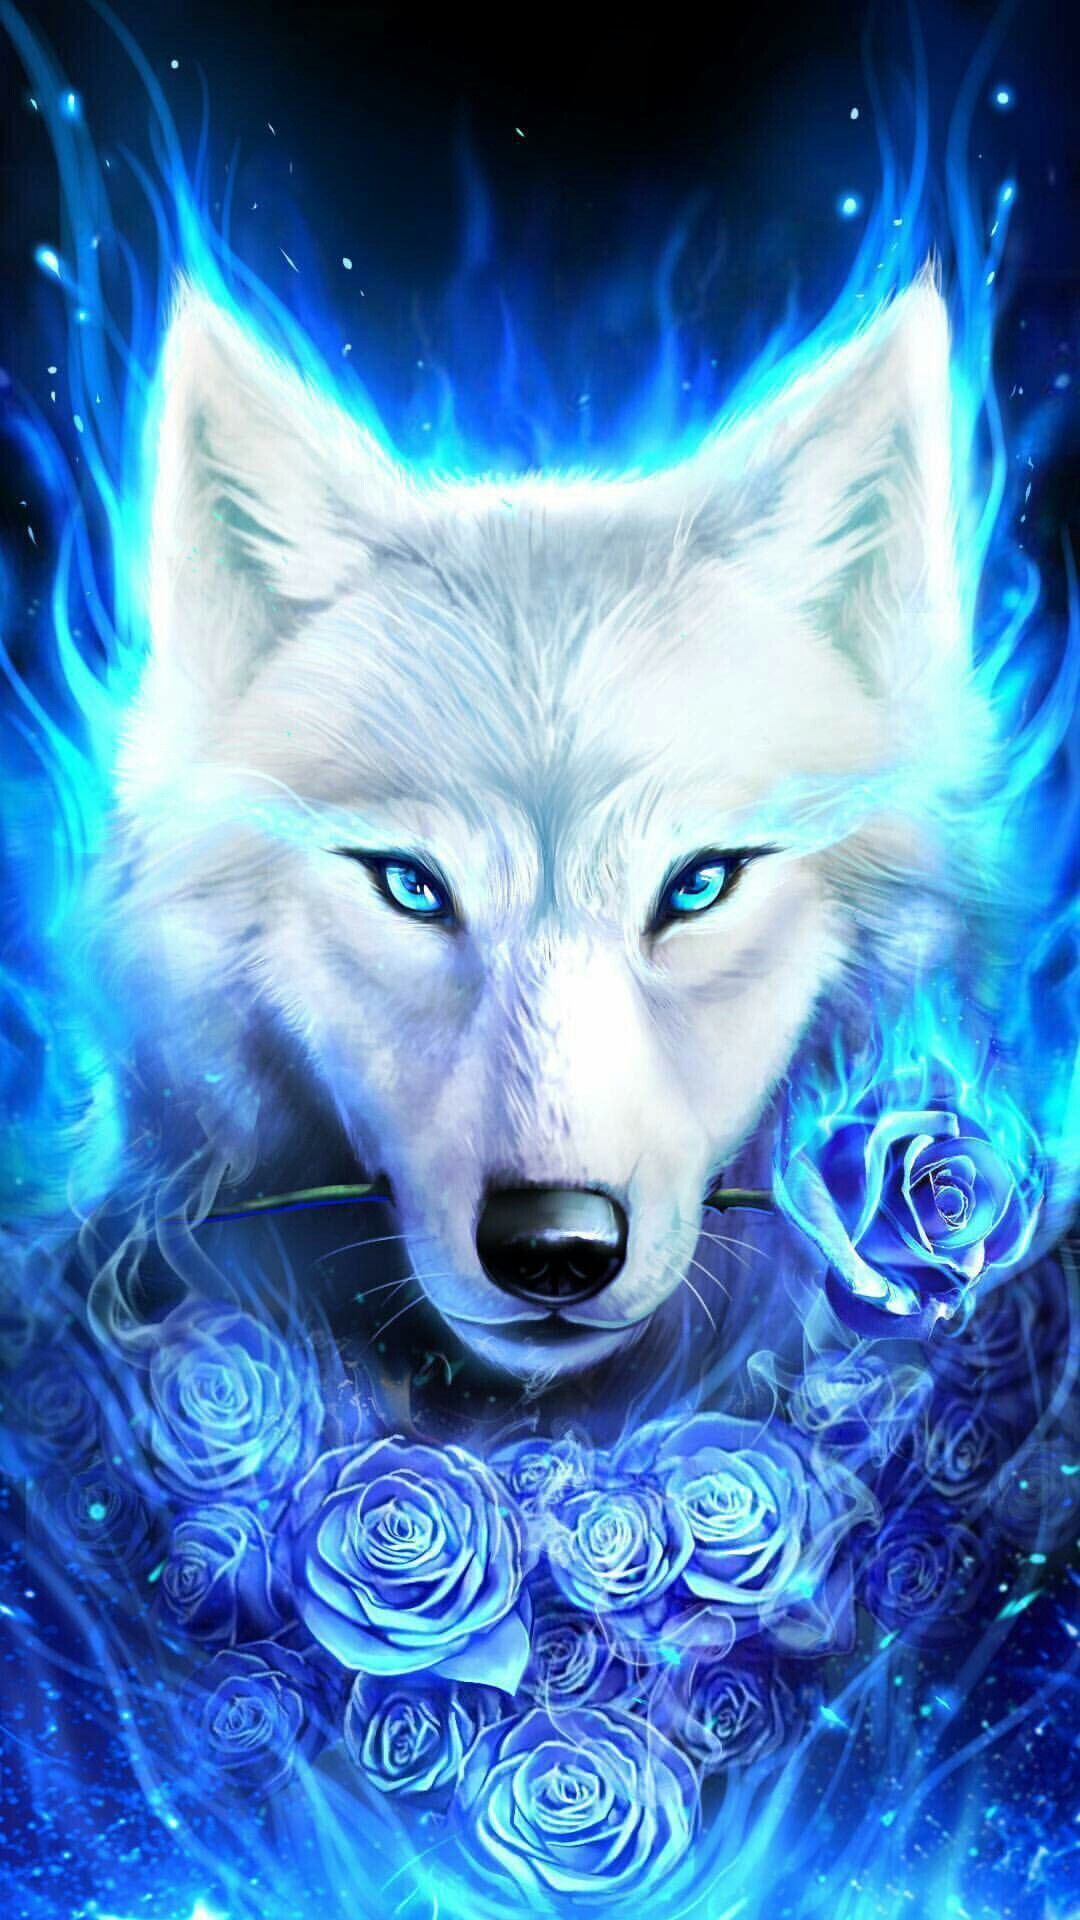 Cute galaxy wolf wallpapers top free cute galaxy wolf - Anime wolf wallpaper ...